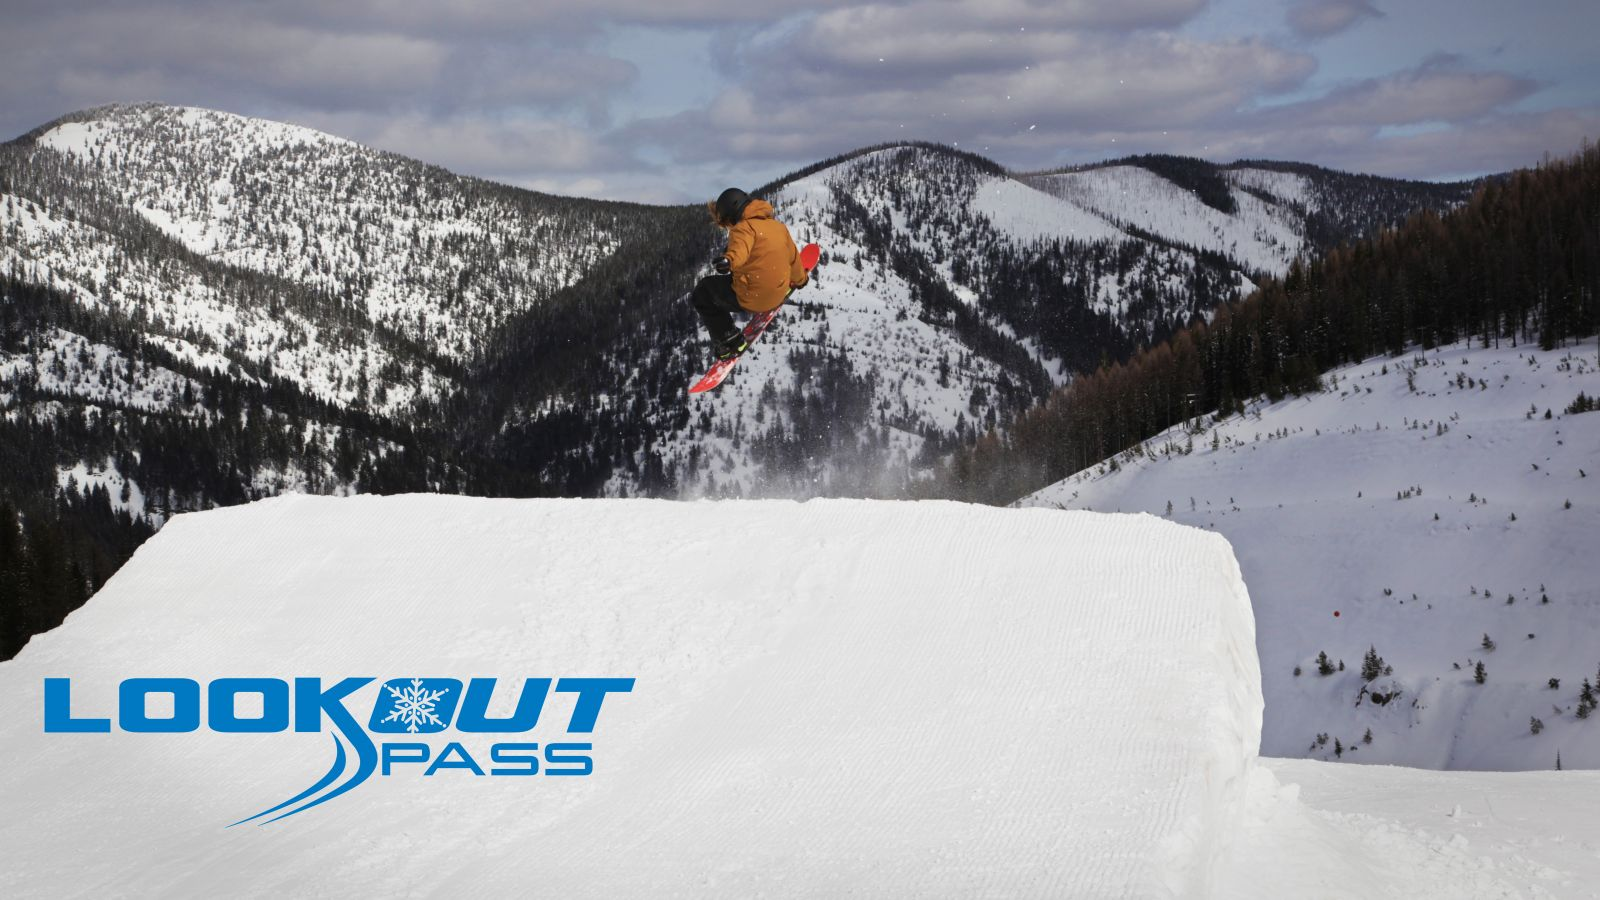 terrain parks geared for fun at lookout pass.